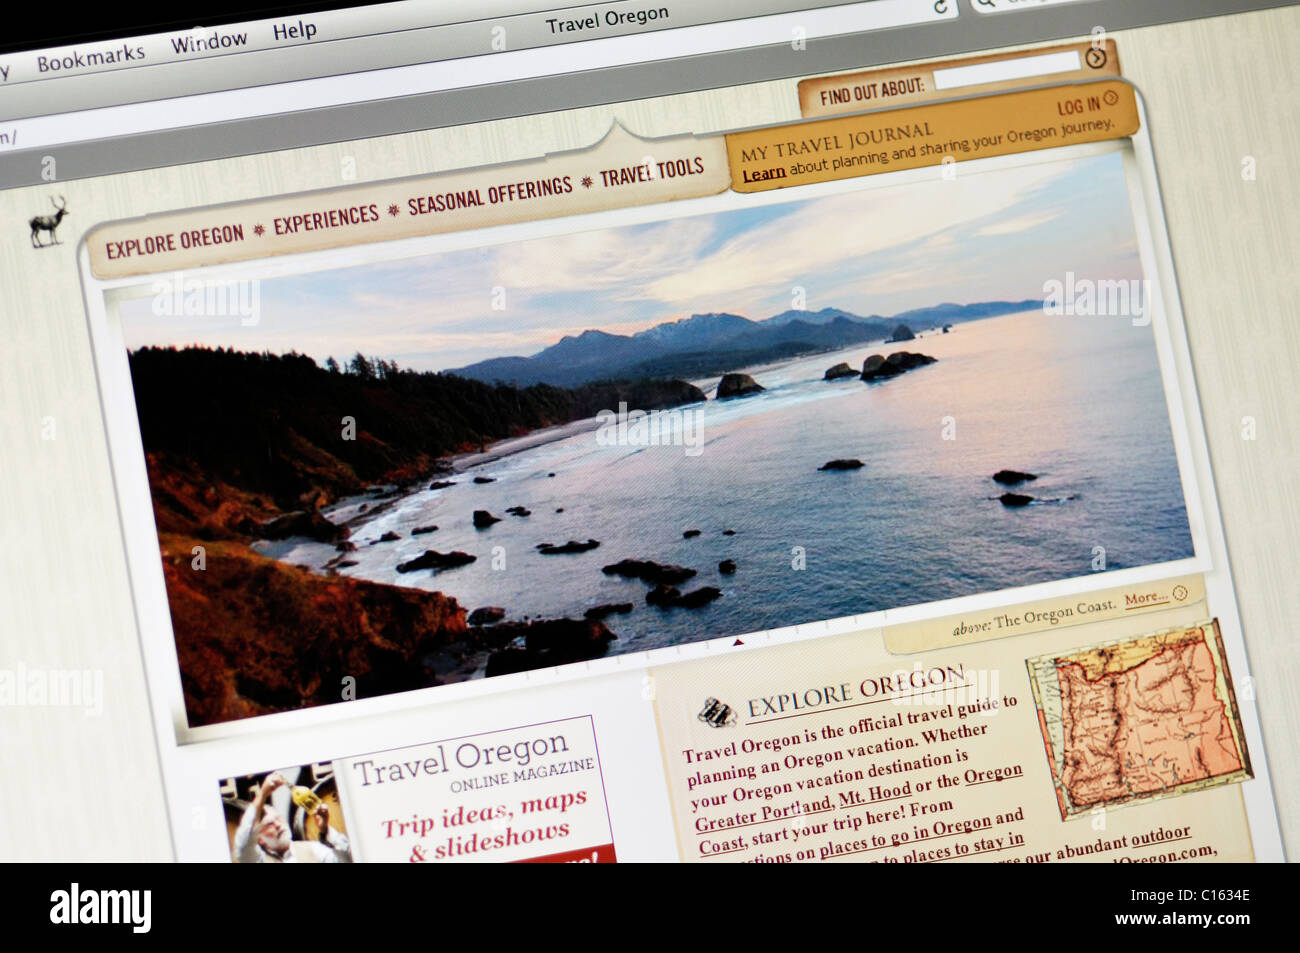 Oregon official state tourism website - Stock Image